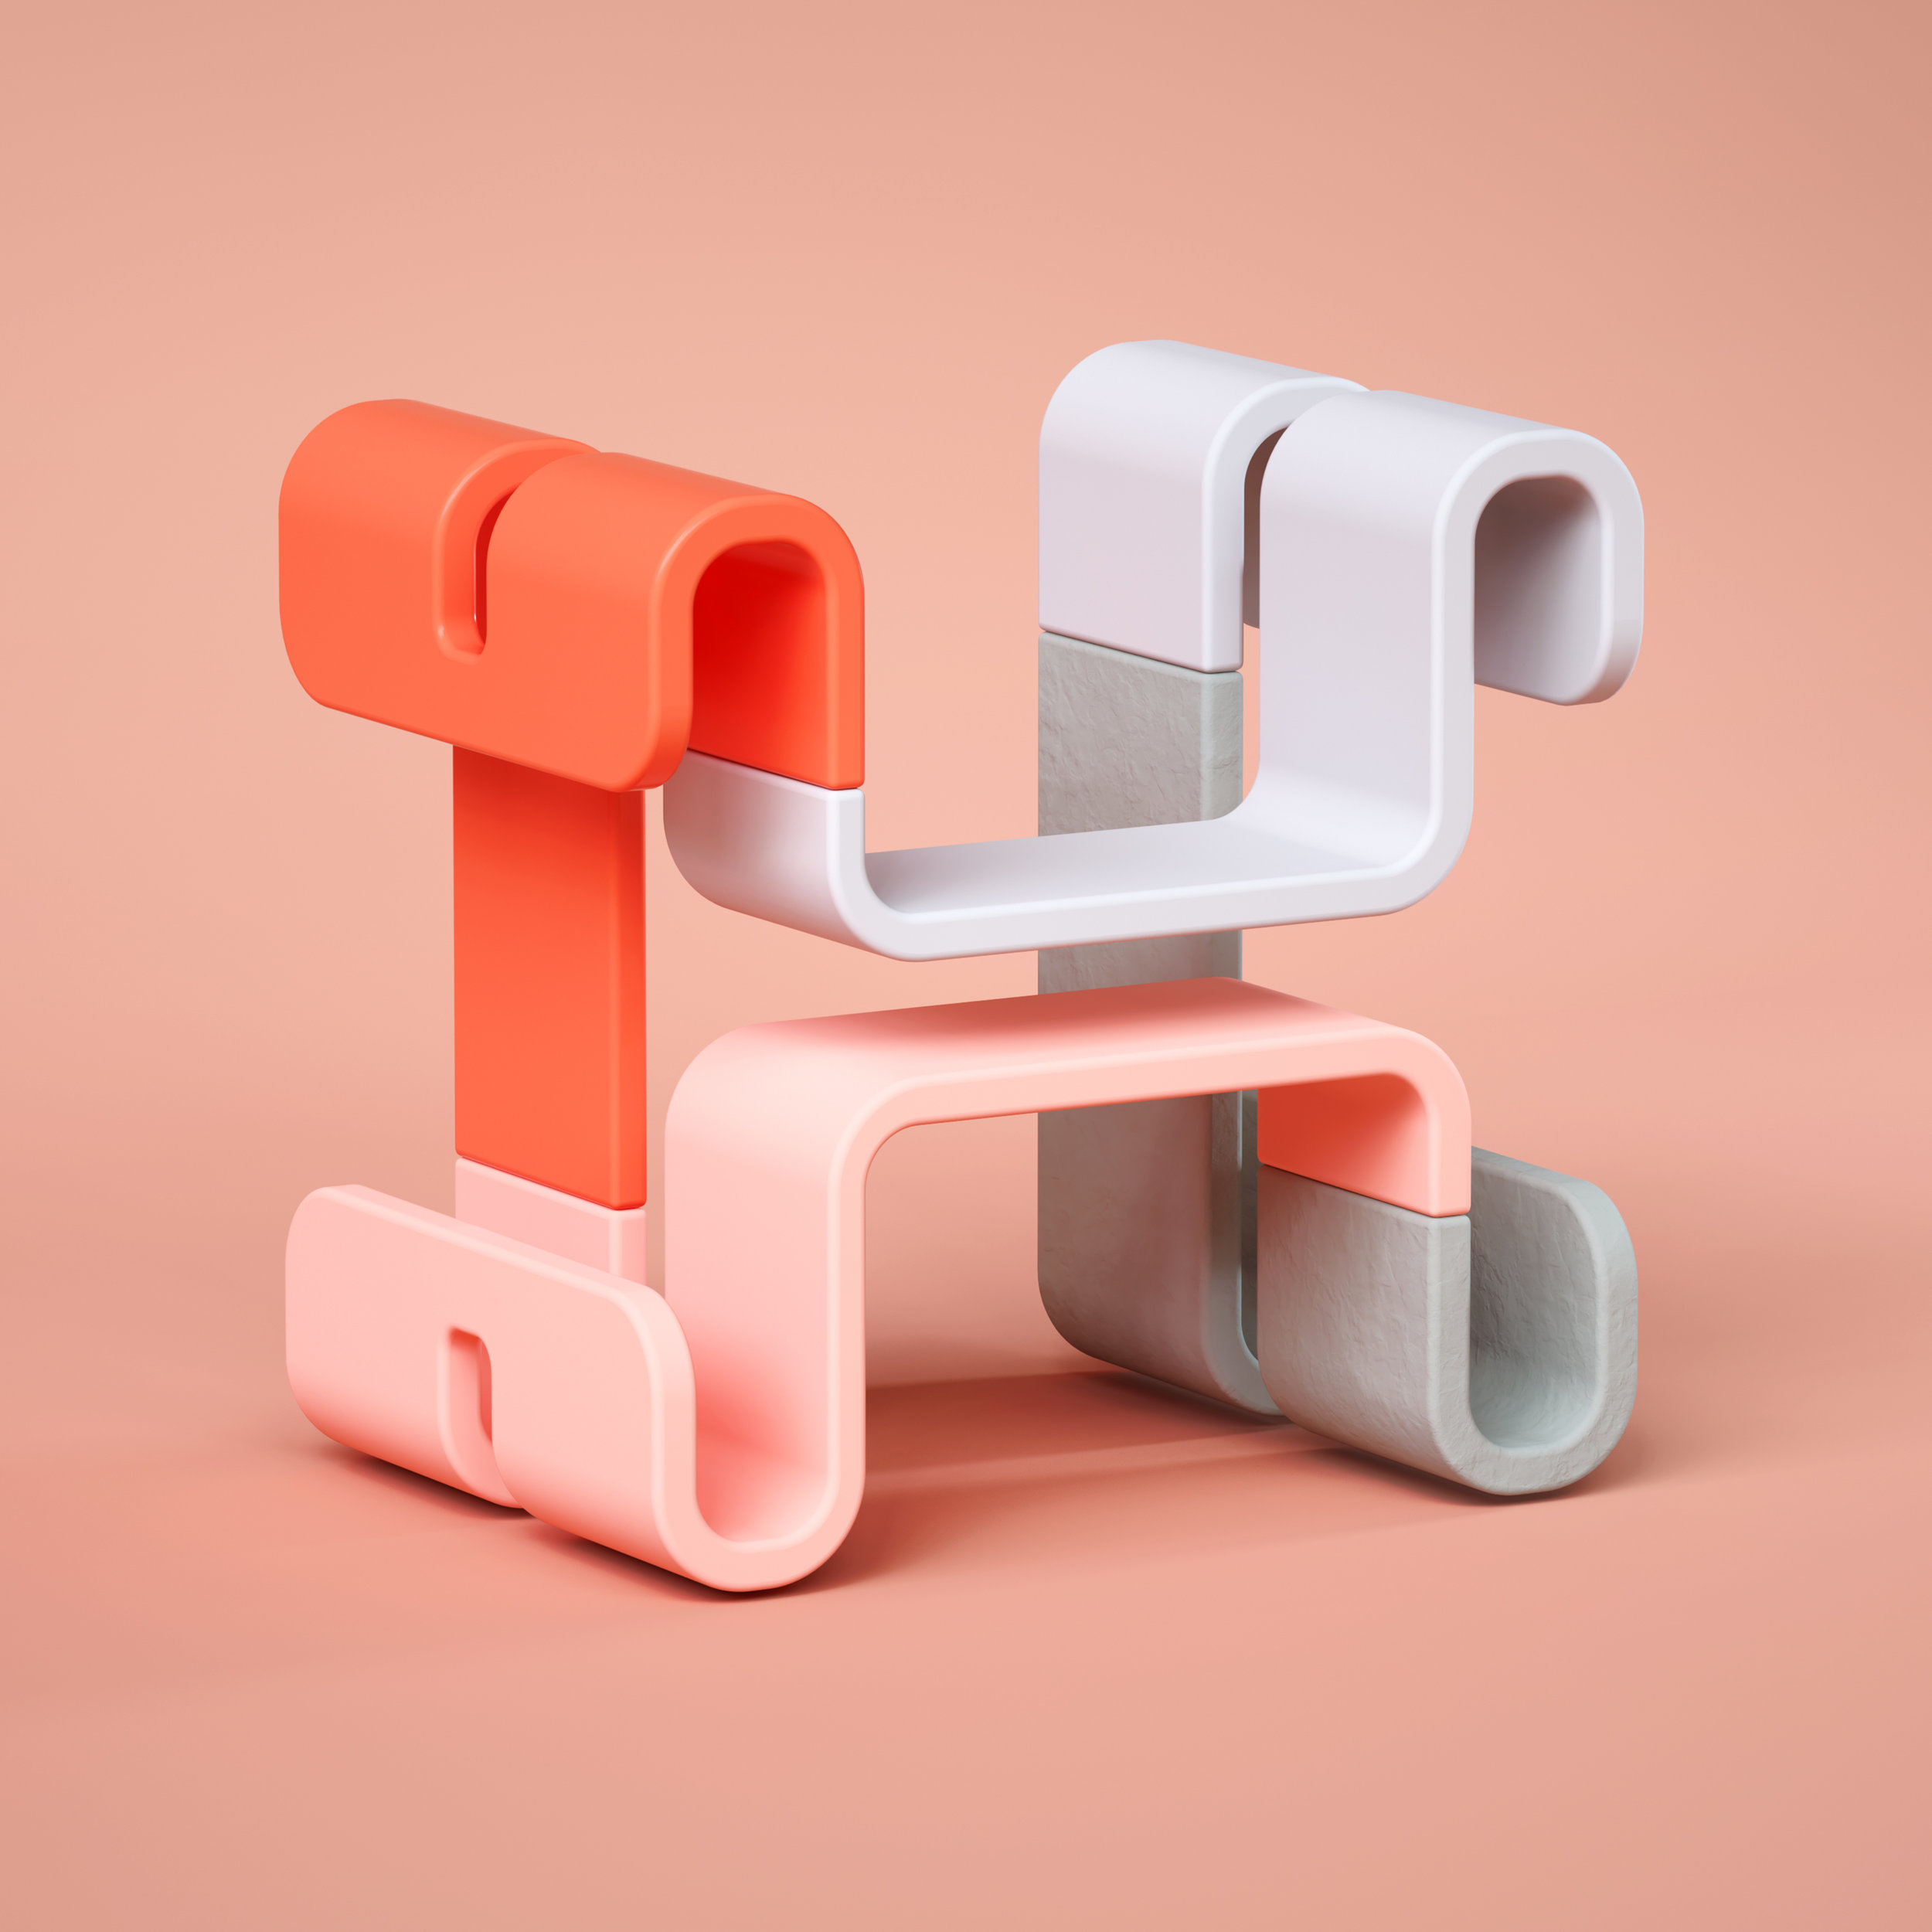 36 Days of Type 2019 - 3D Typeform letter H visual.